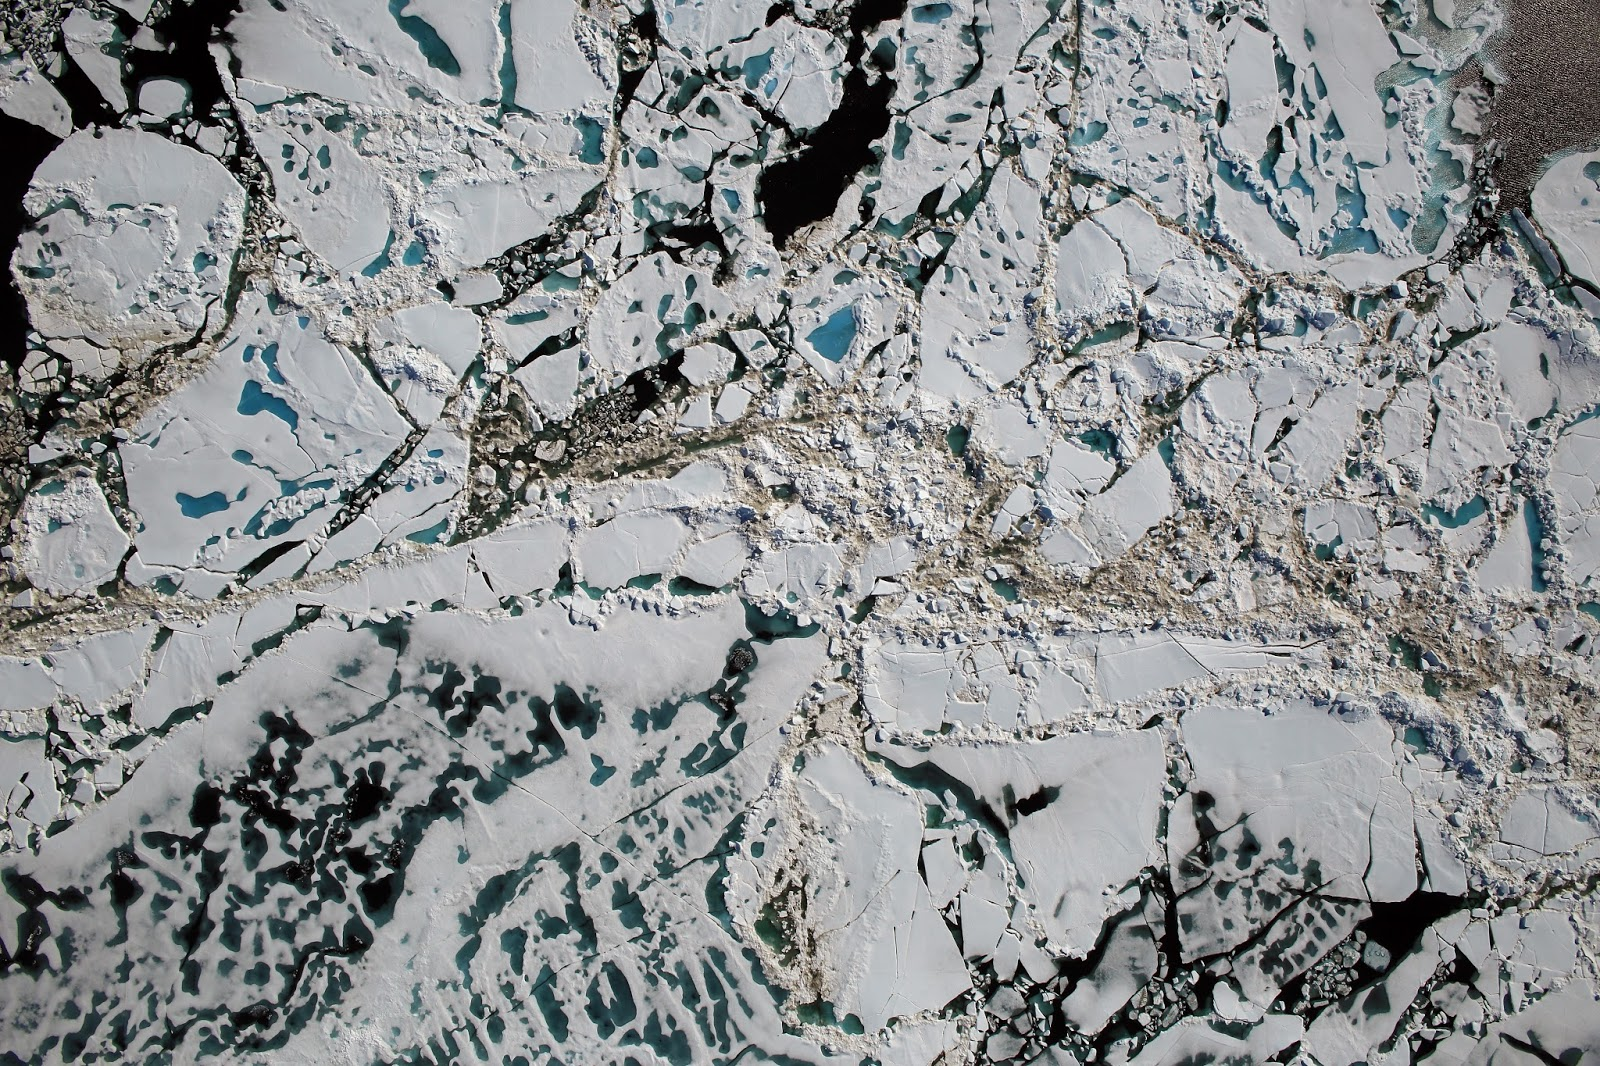 Orbiter space news 2016 07 17 image above chunks of sea ice melt ponds and open water are all seen in this image captured at an altitude of 1500 feet by the nasas digital mapping publicscrutiny Images